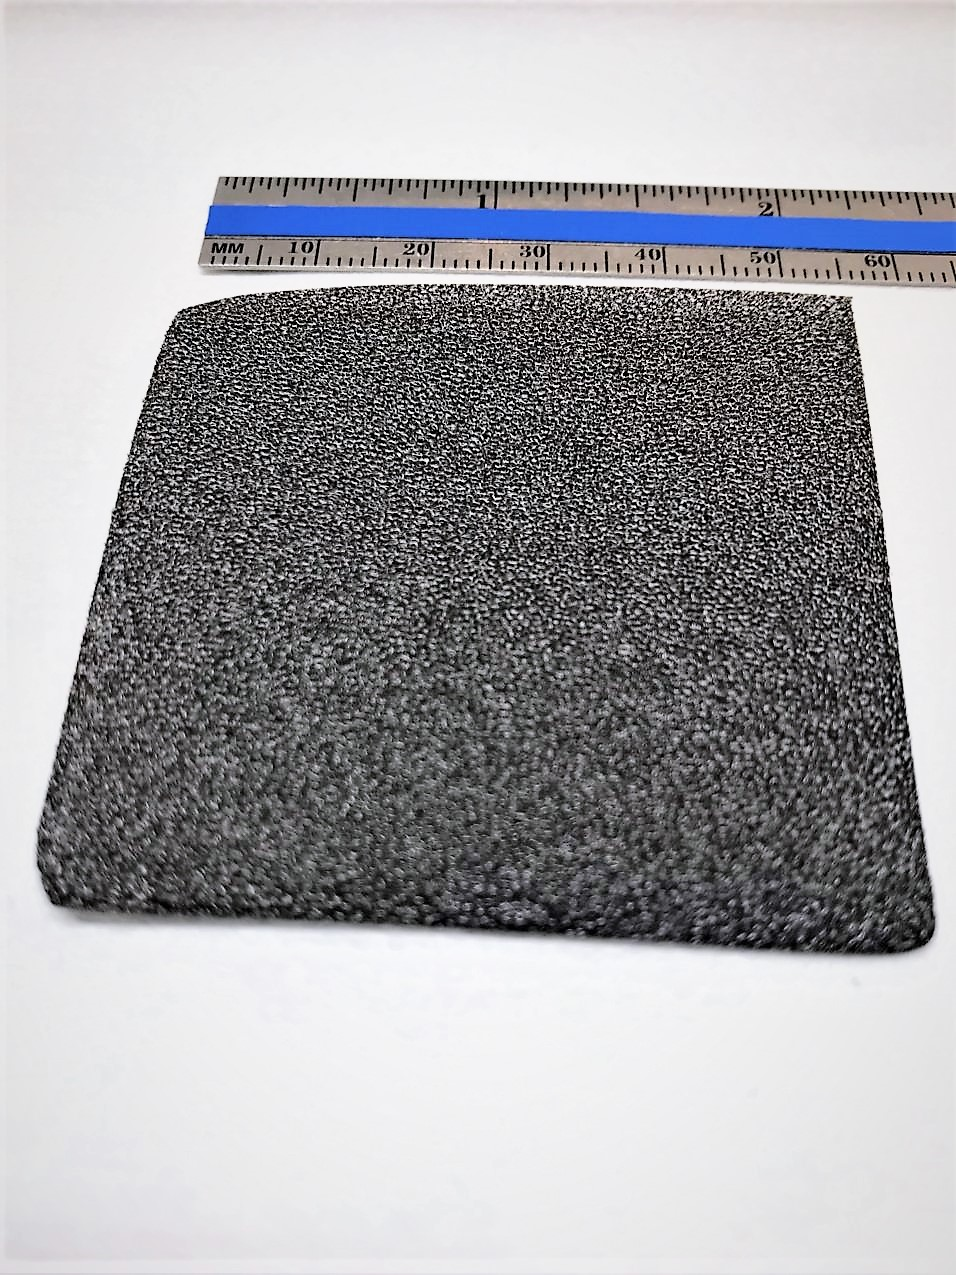 graphene-nickel-foam-3.jpg